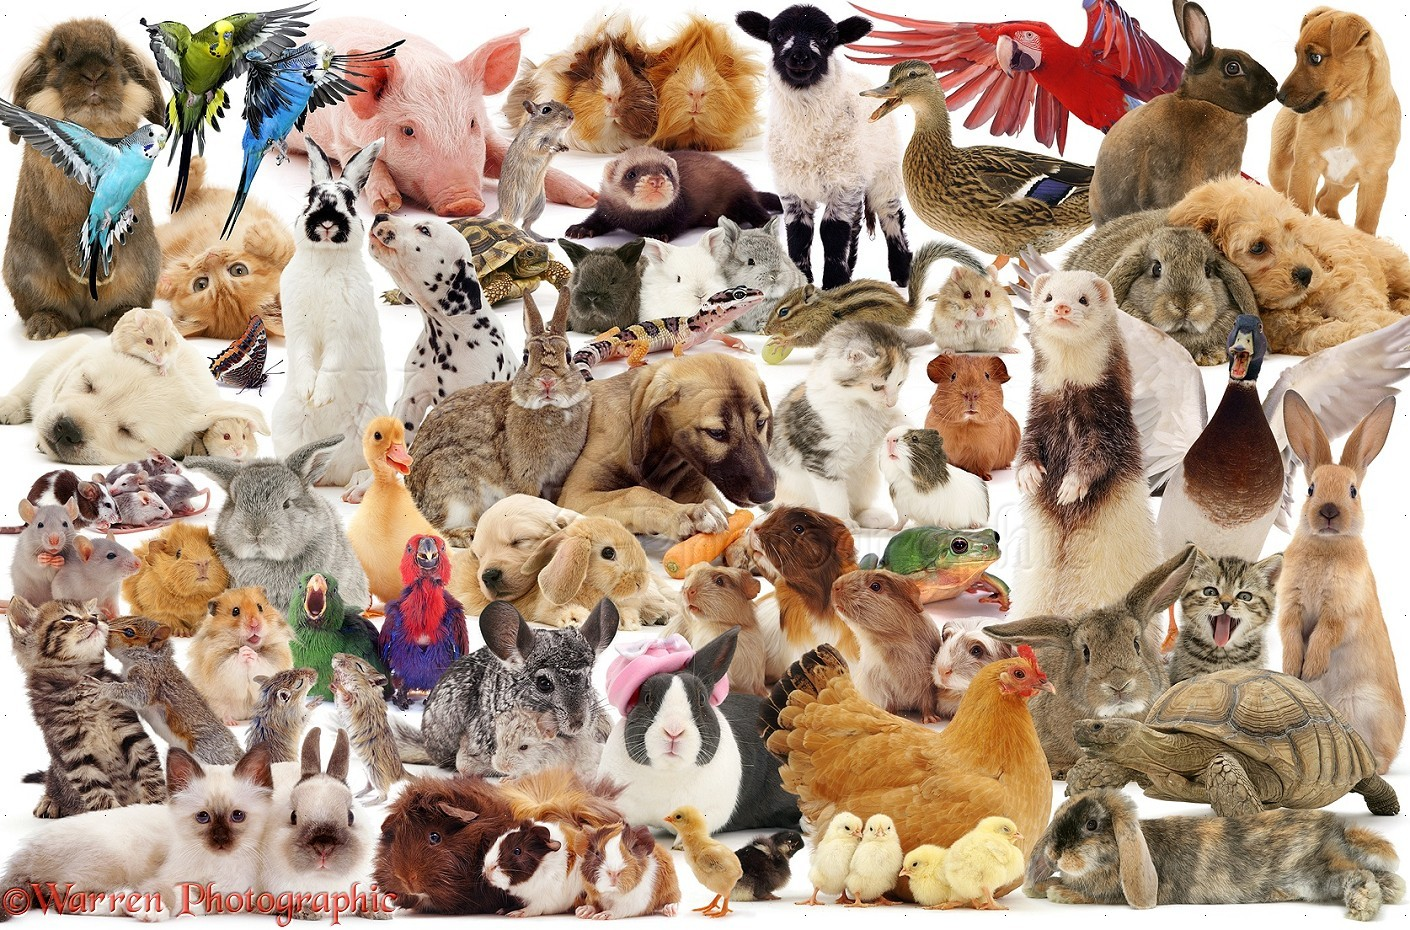 17285-Pets-montage-jigsaw-white-background